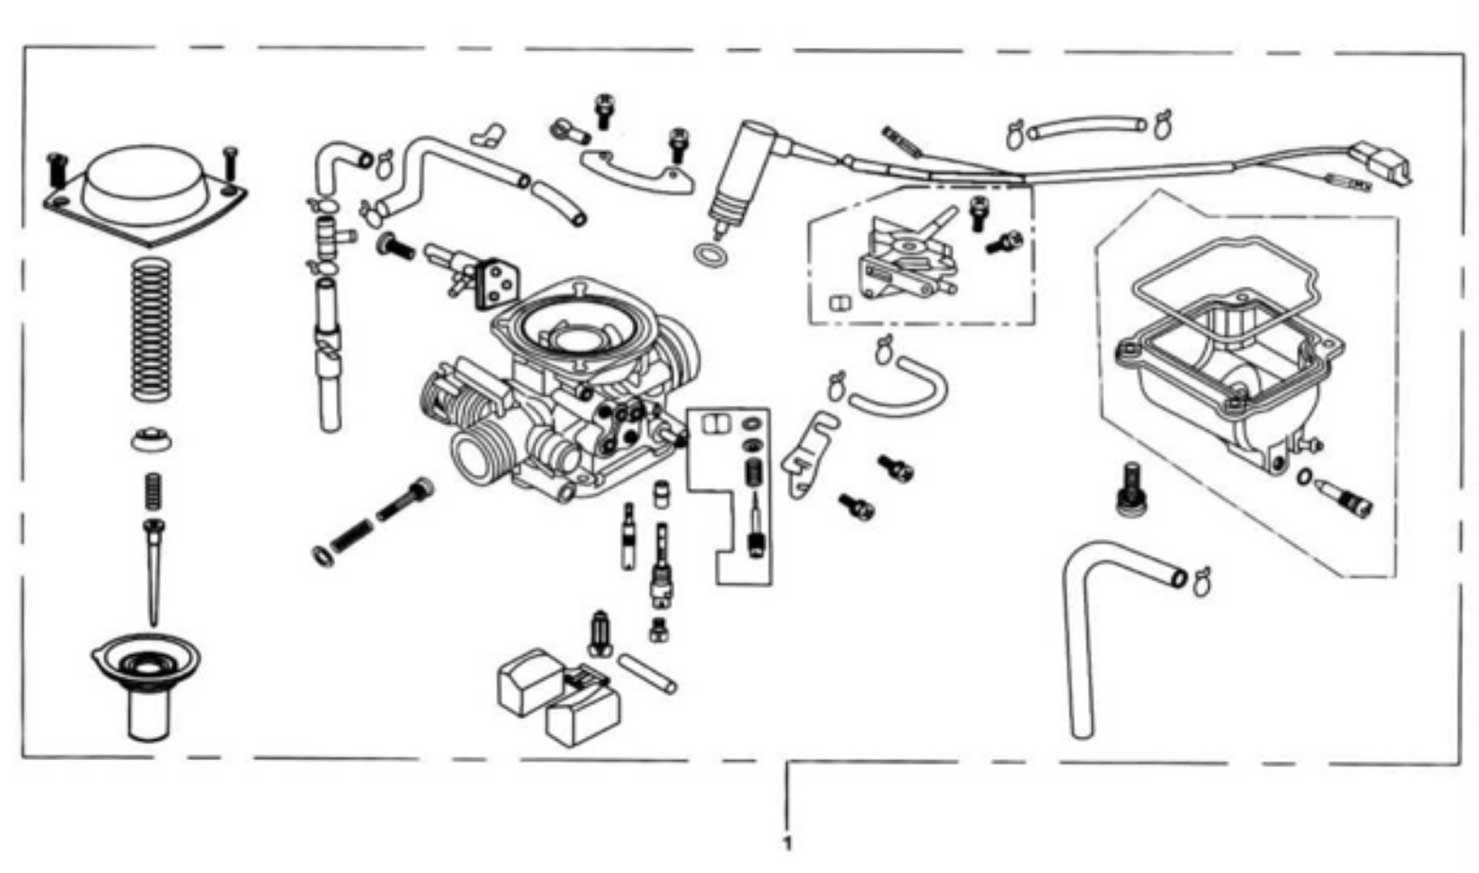 hammerhead gt 150 wiring diagram   32 wiring diagram